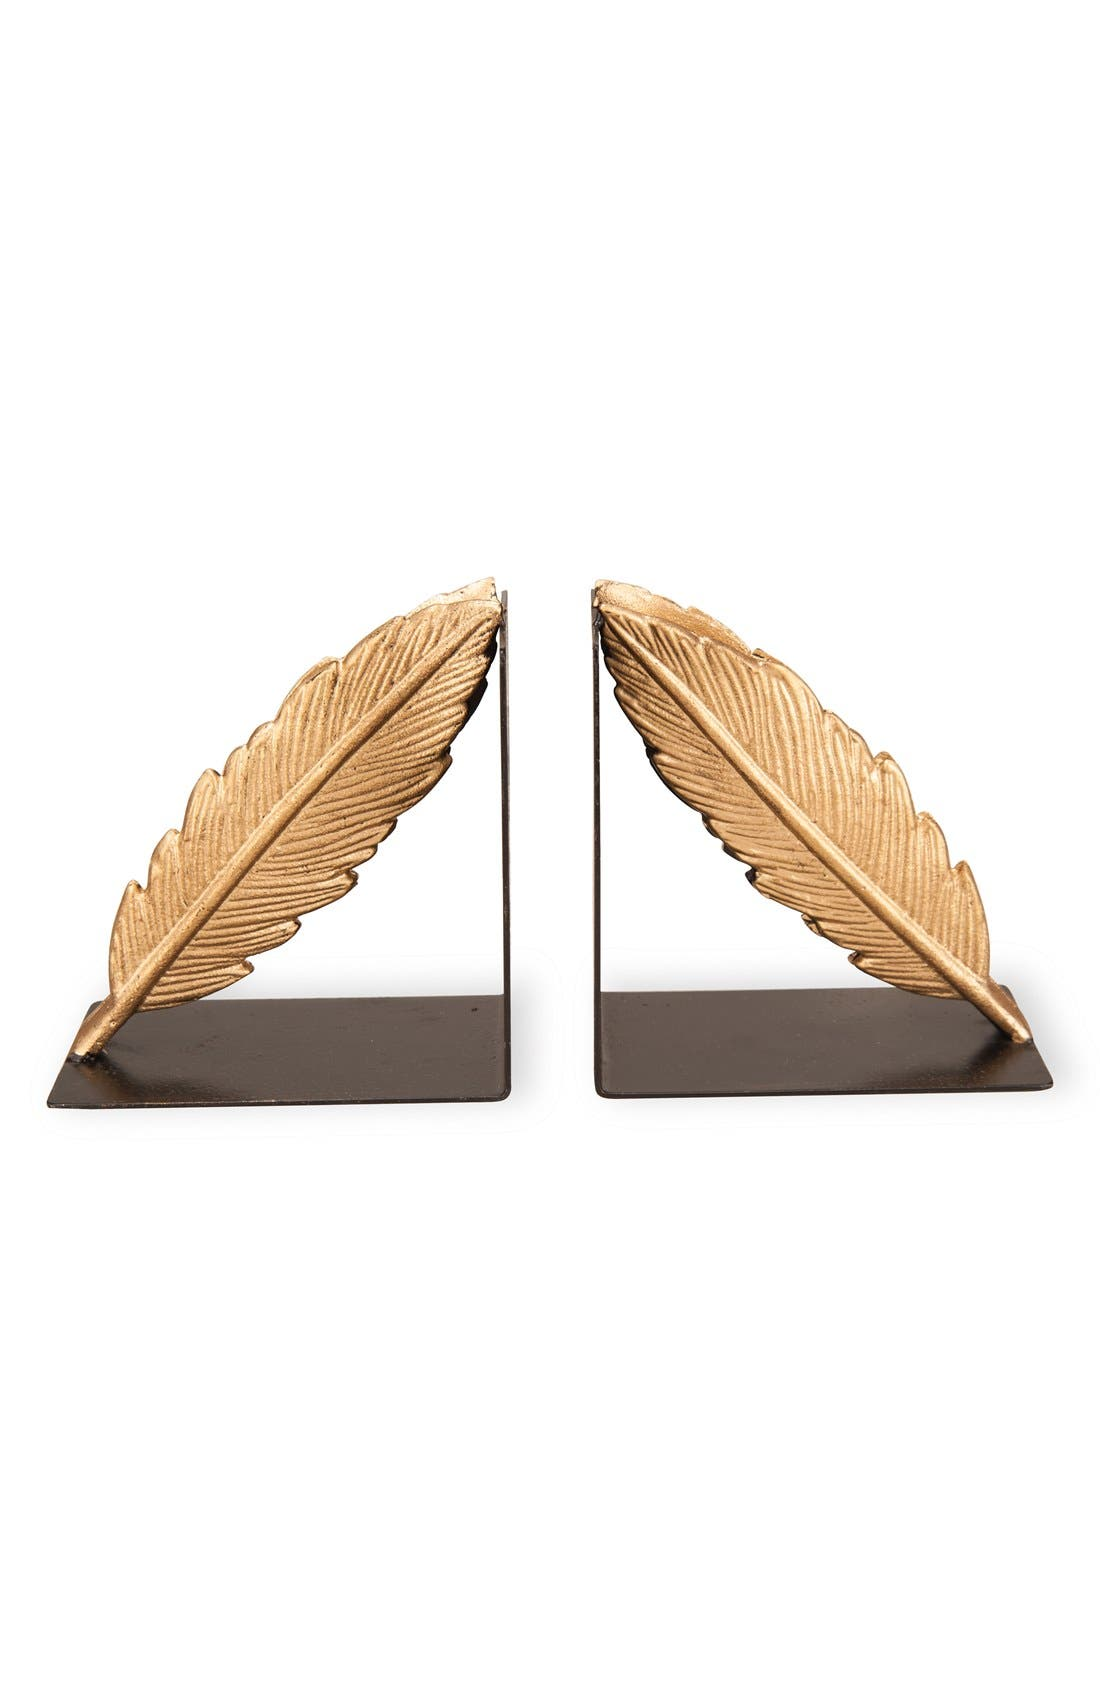 Main Image - Foreside Gold Feather Bookends (Set of 2)